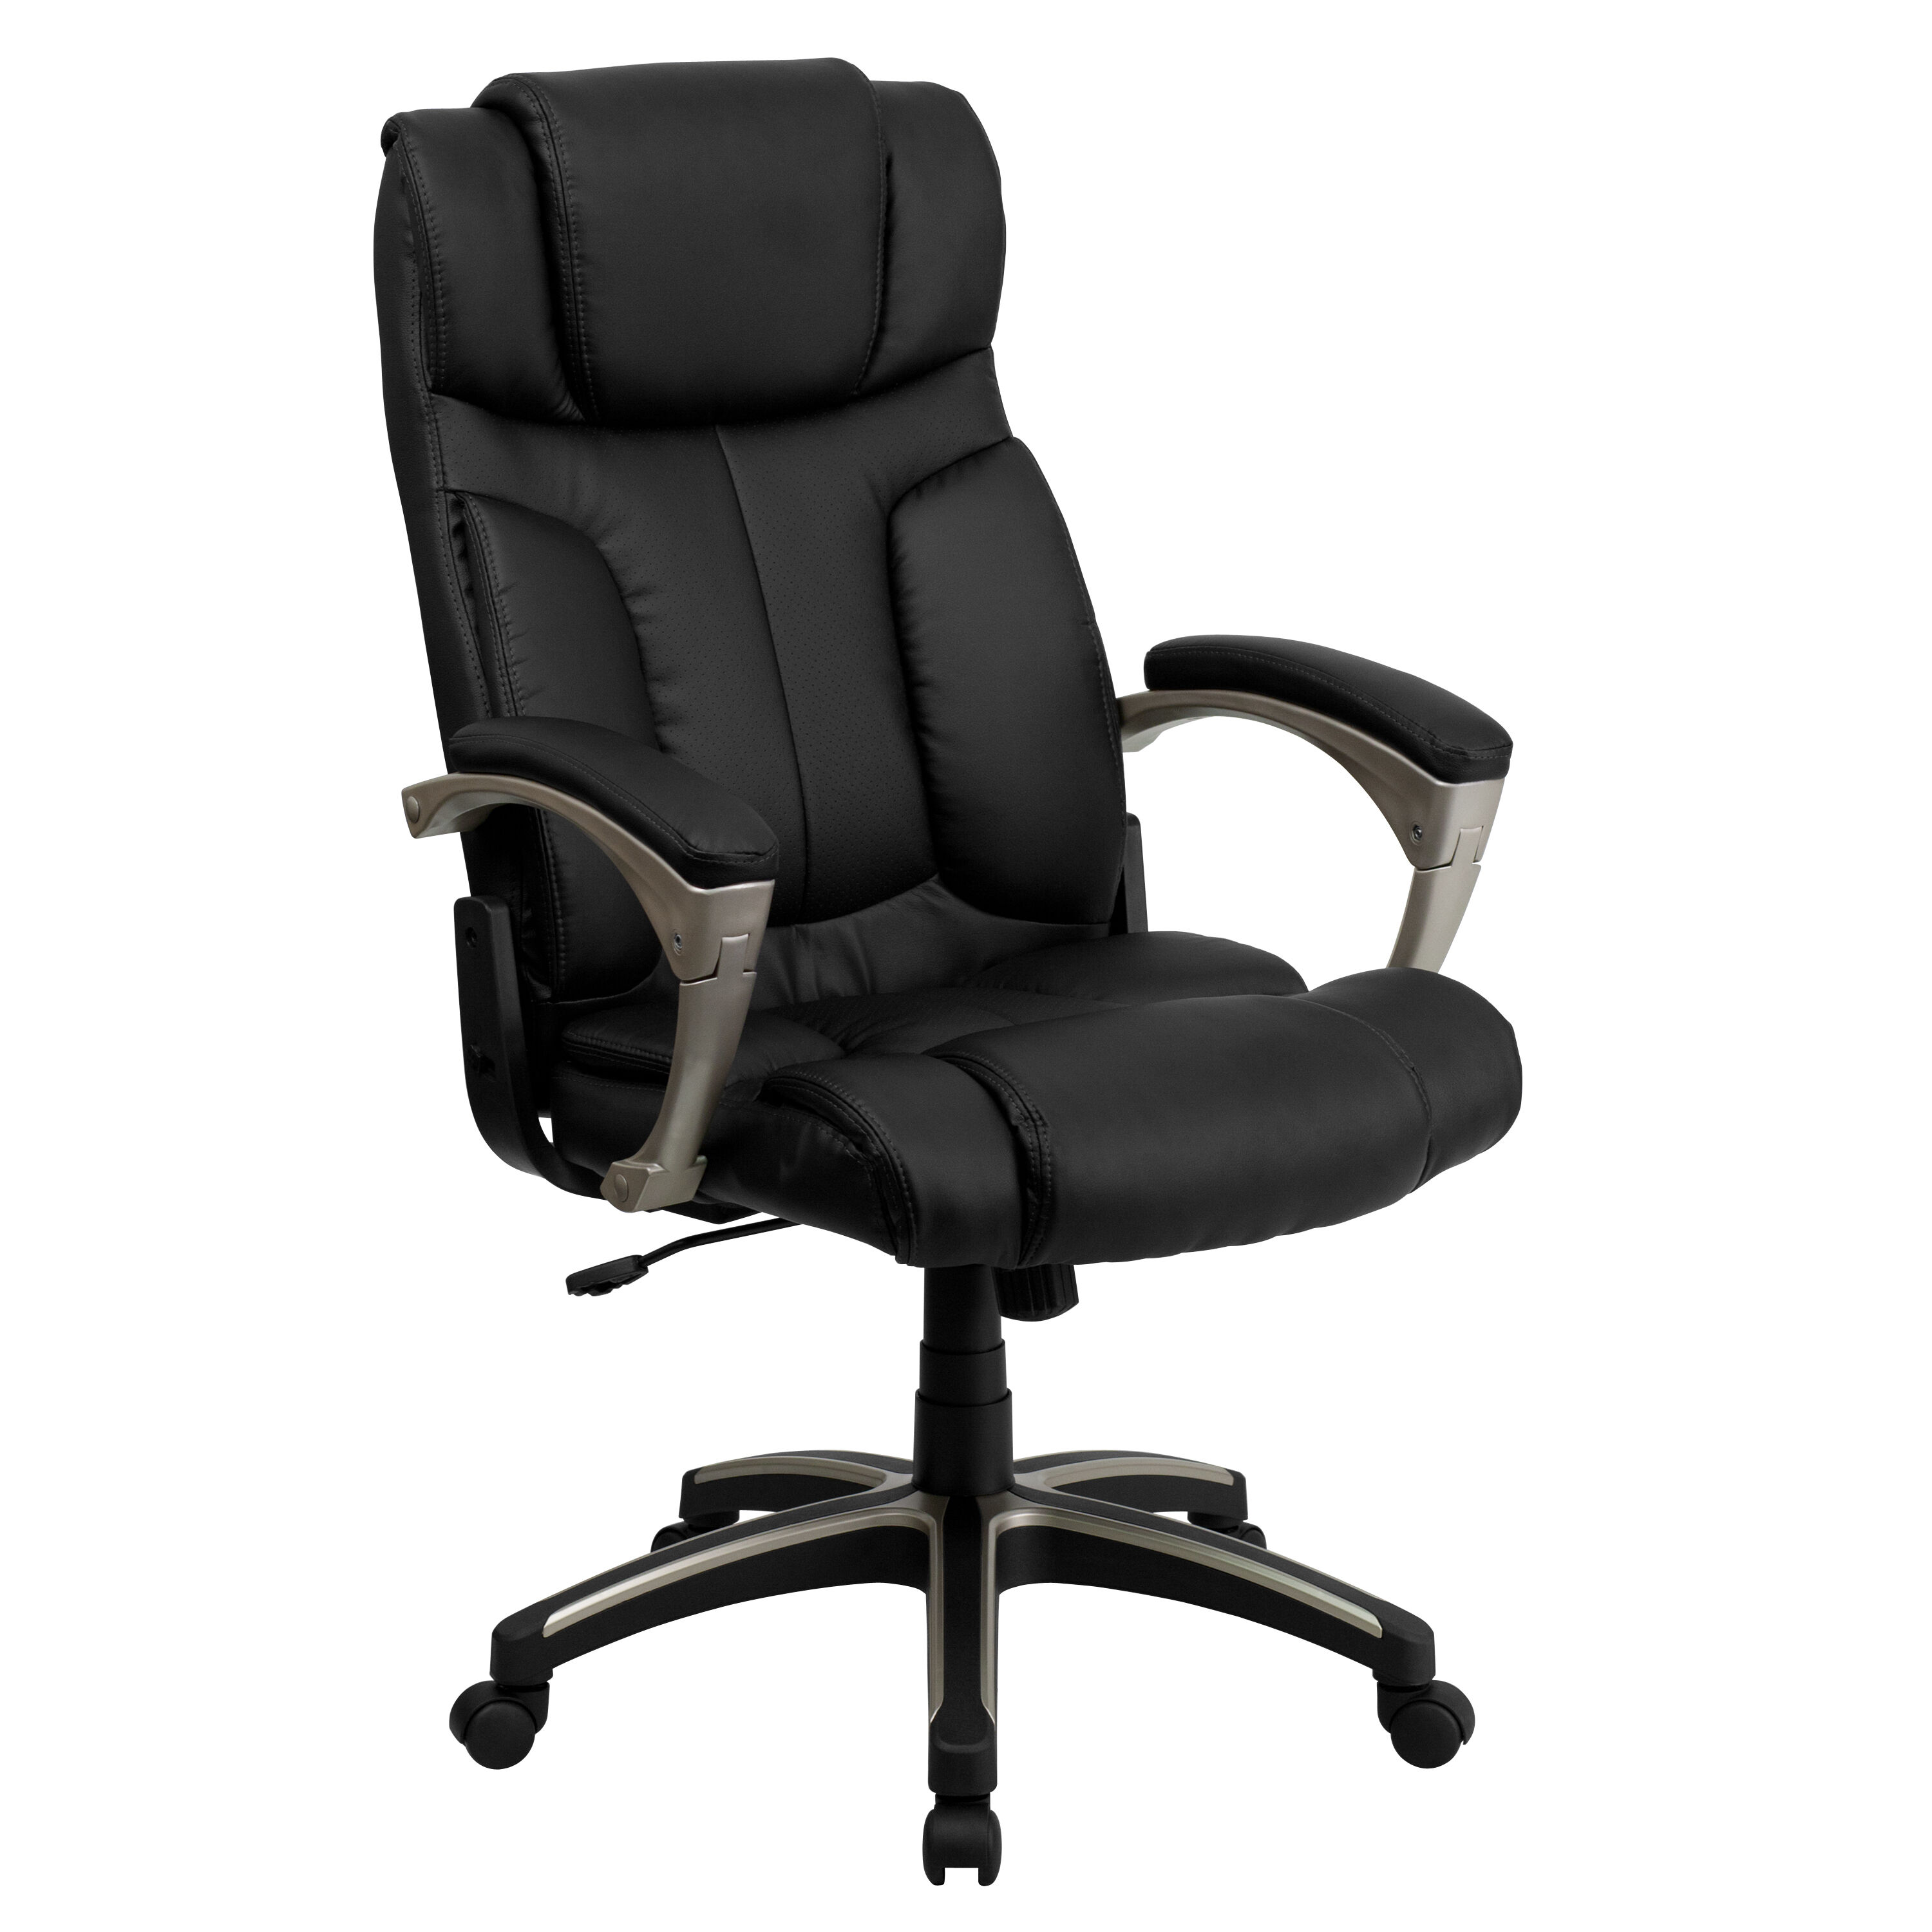 Black High Back Leather Chair BT